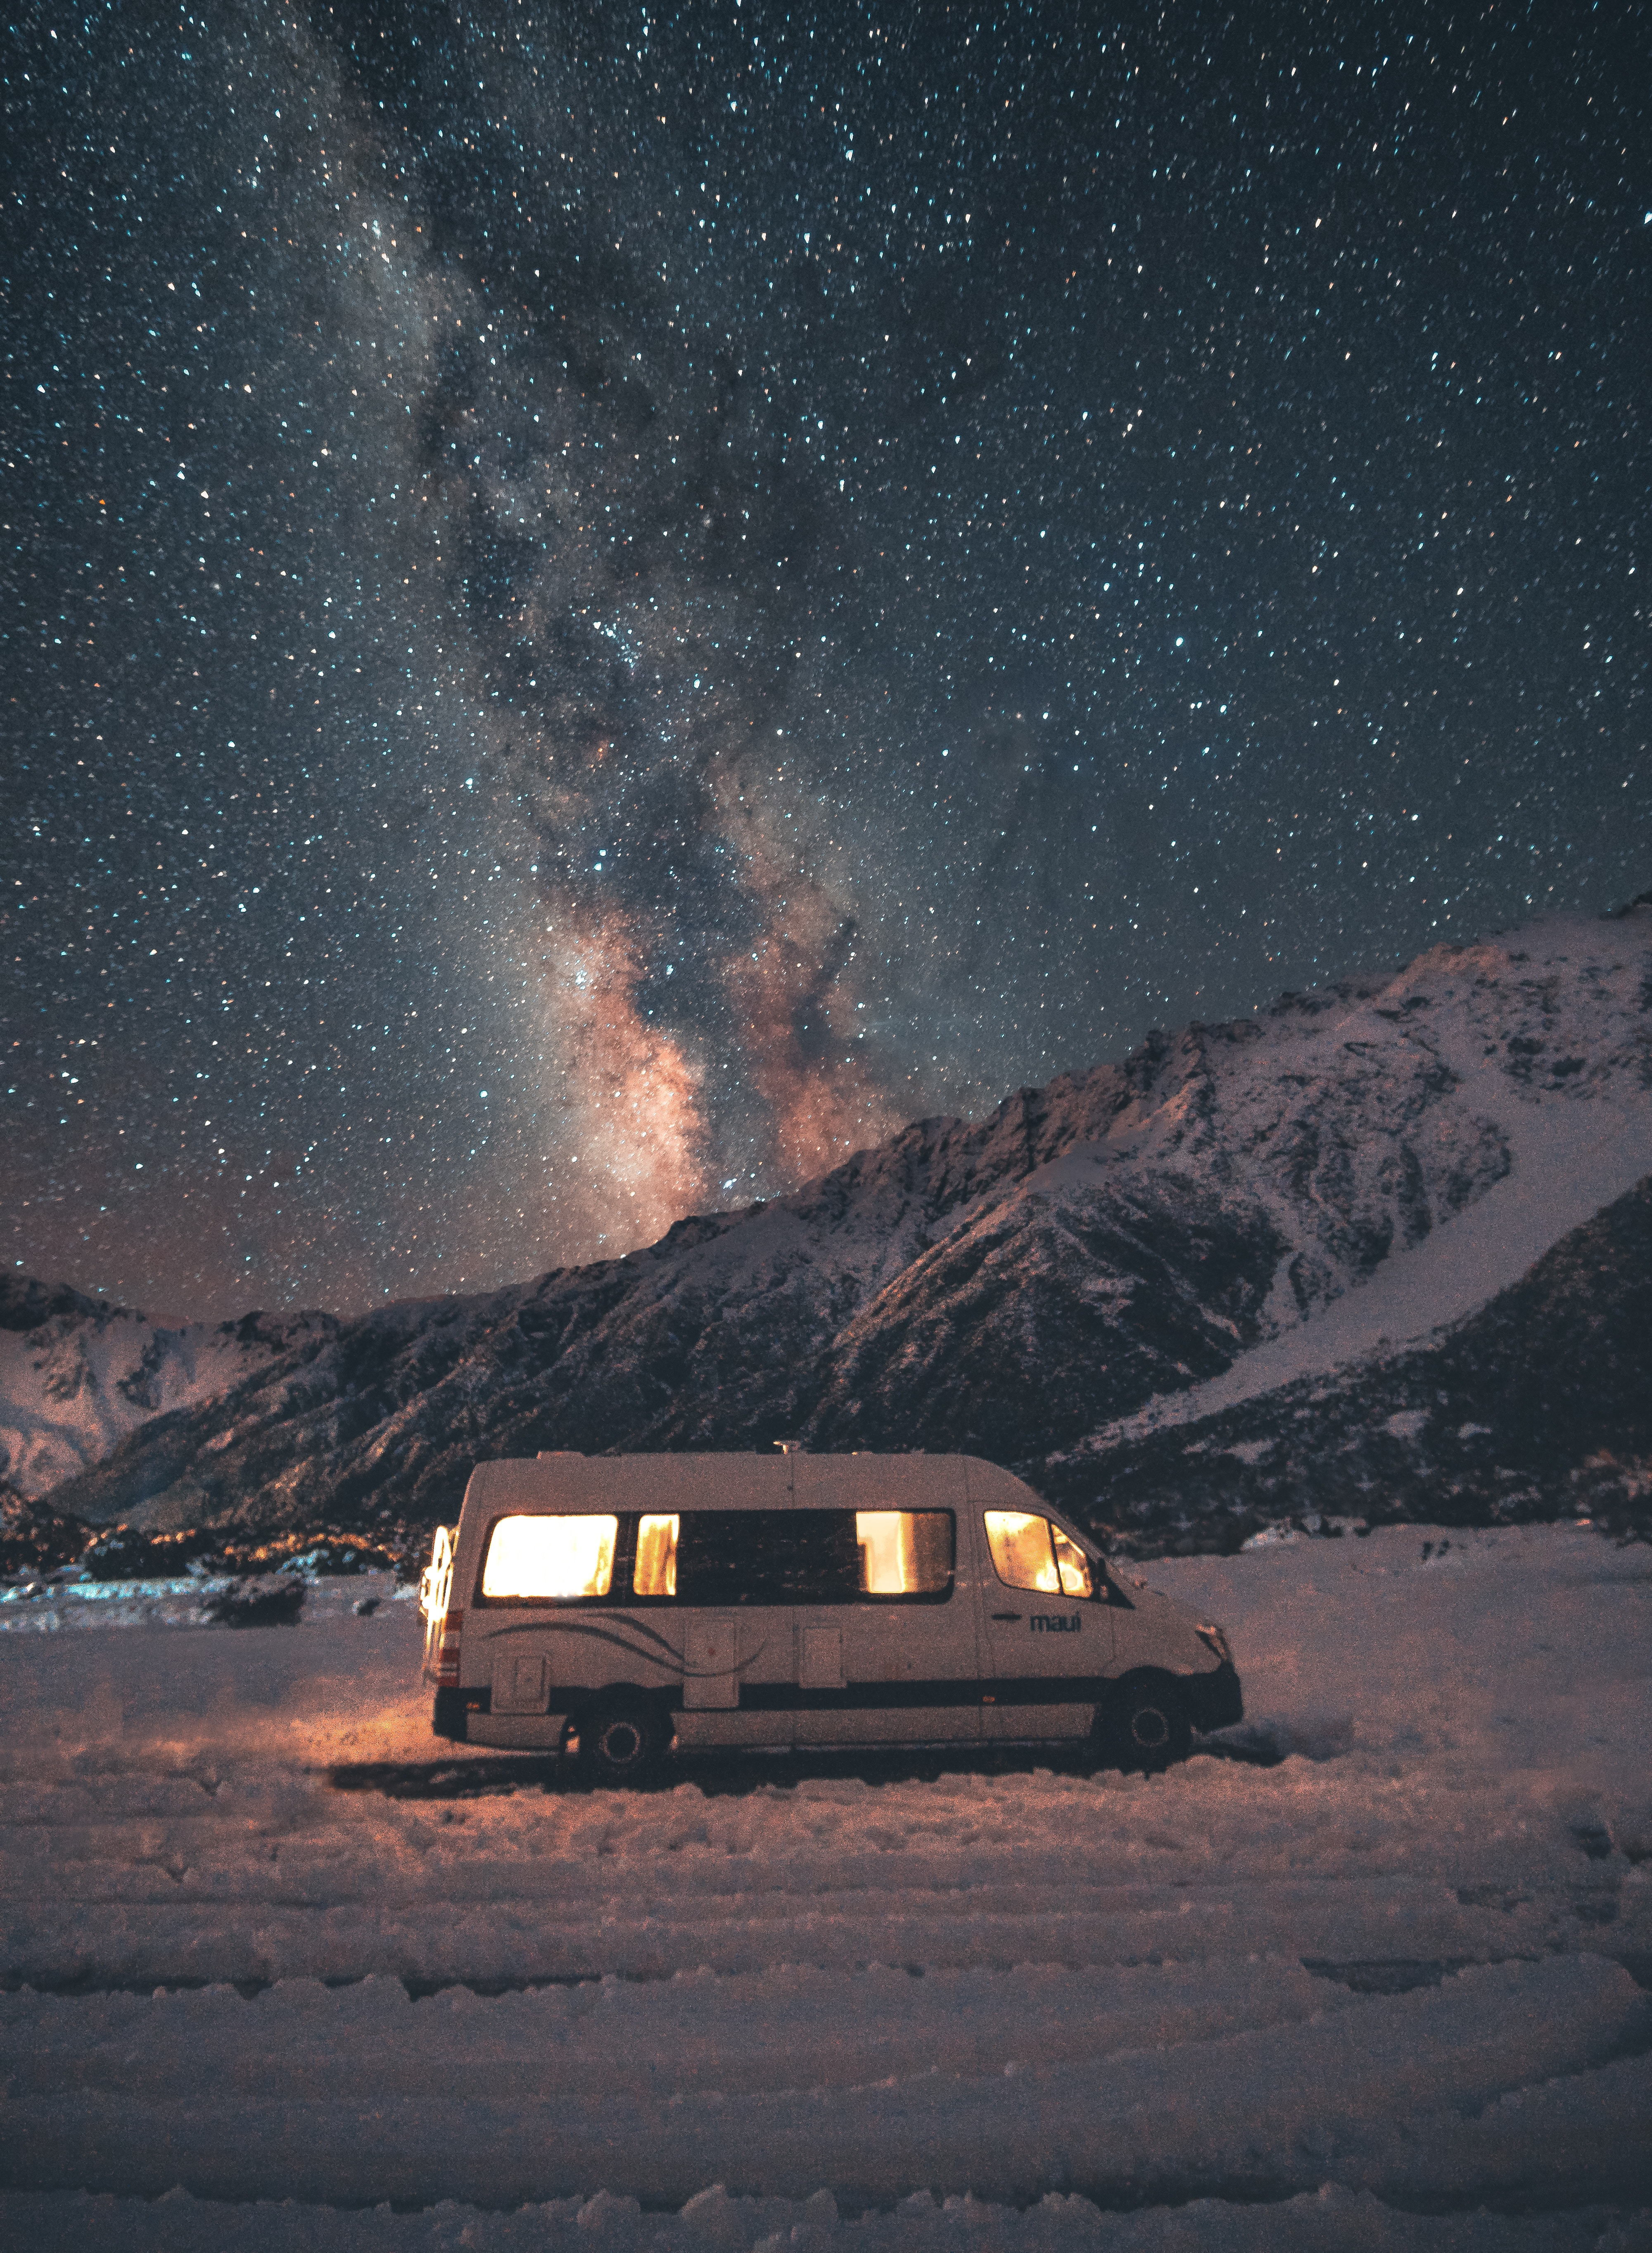 76807 download wallpaper Landscape, Nature, Mountains, Night, Starry Sky, Journey, Van screensavers and pictures for free